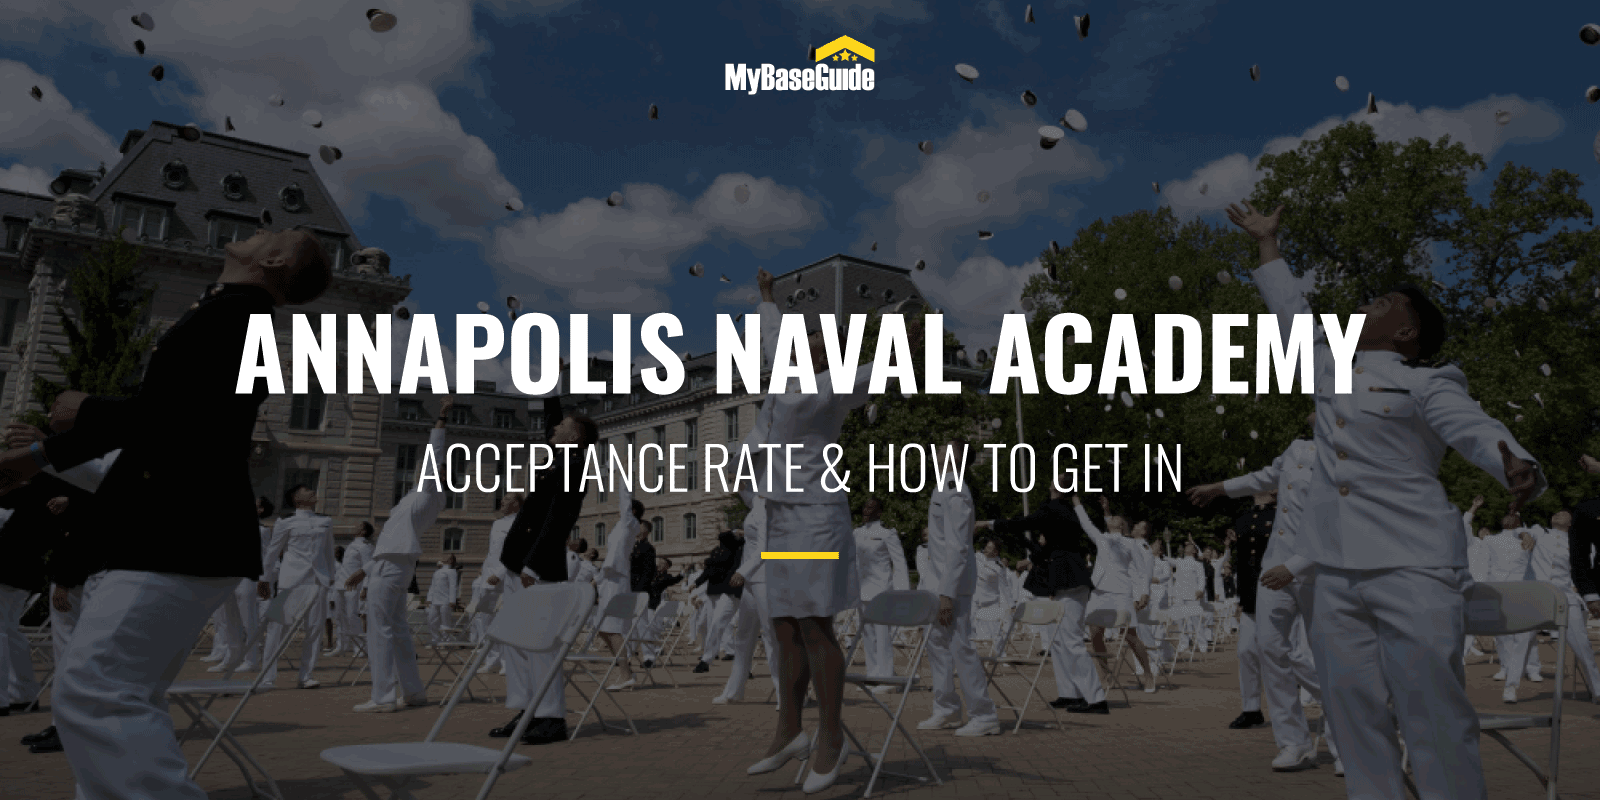 Annapolis Naval Academy Acceptance Rate & How to Get in